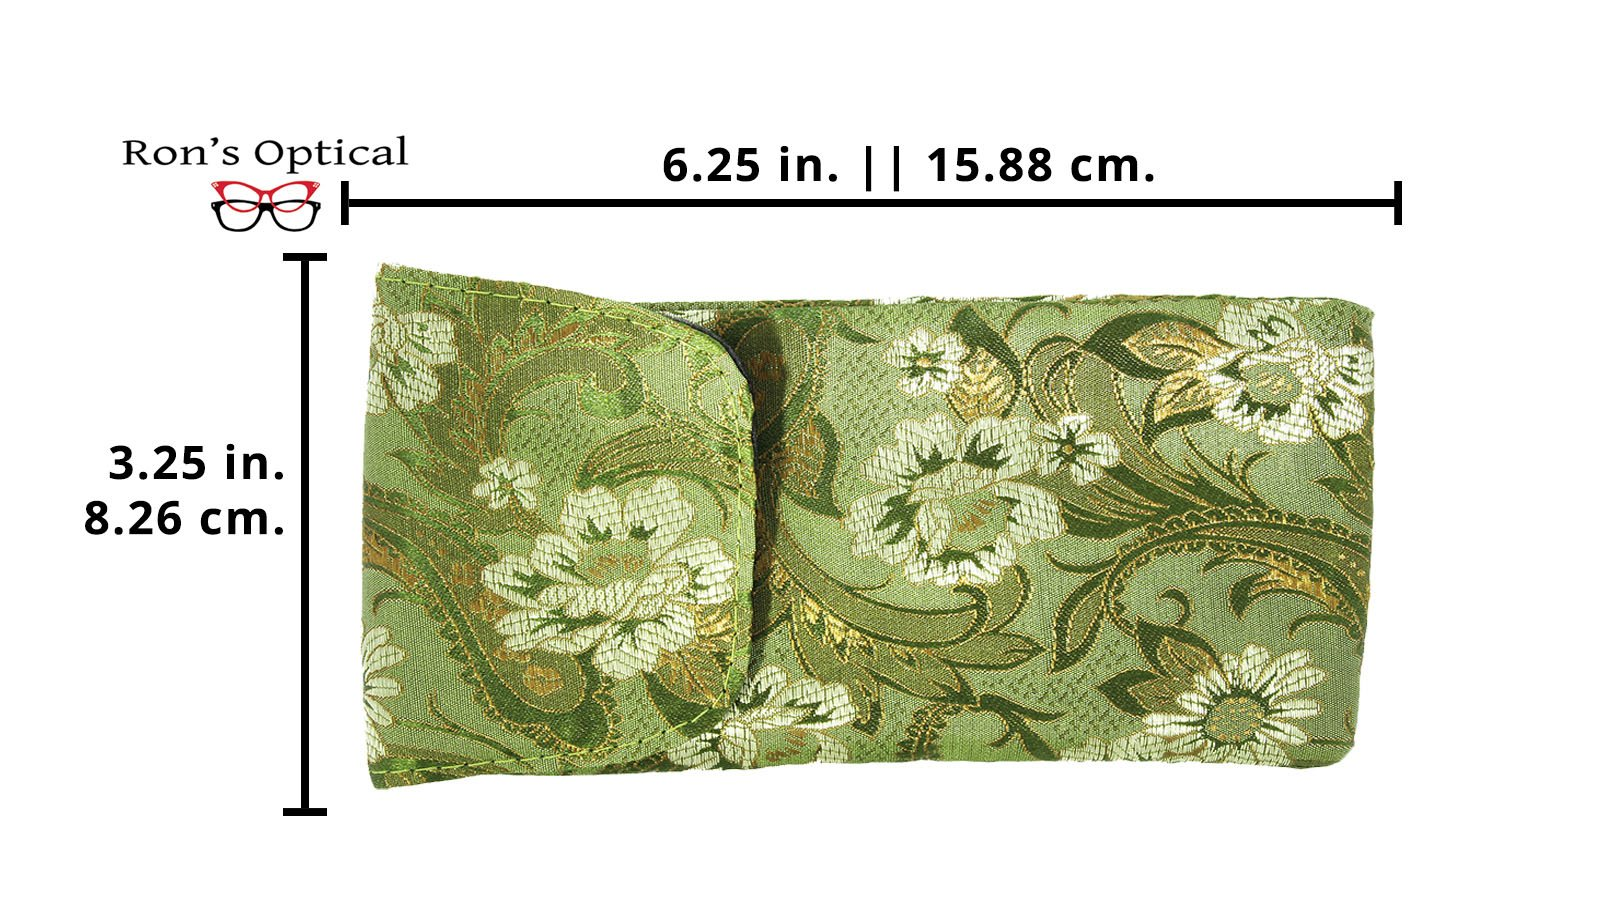 3 Pack Floral Eyeglass Case Top Closure, Slip In Eyeglass Case Soft Fits Medium To Large Glasses, Women by Ron's Optical (Image #2)